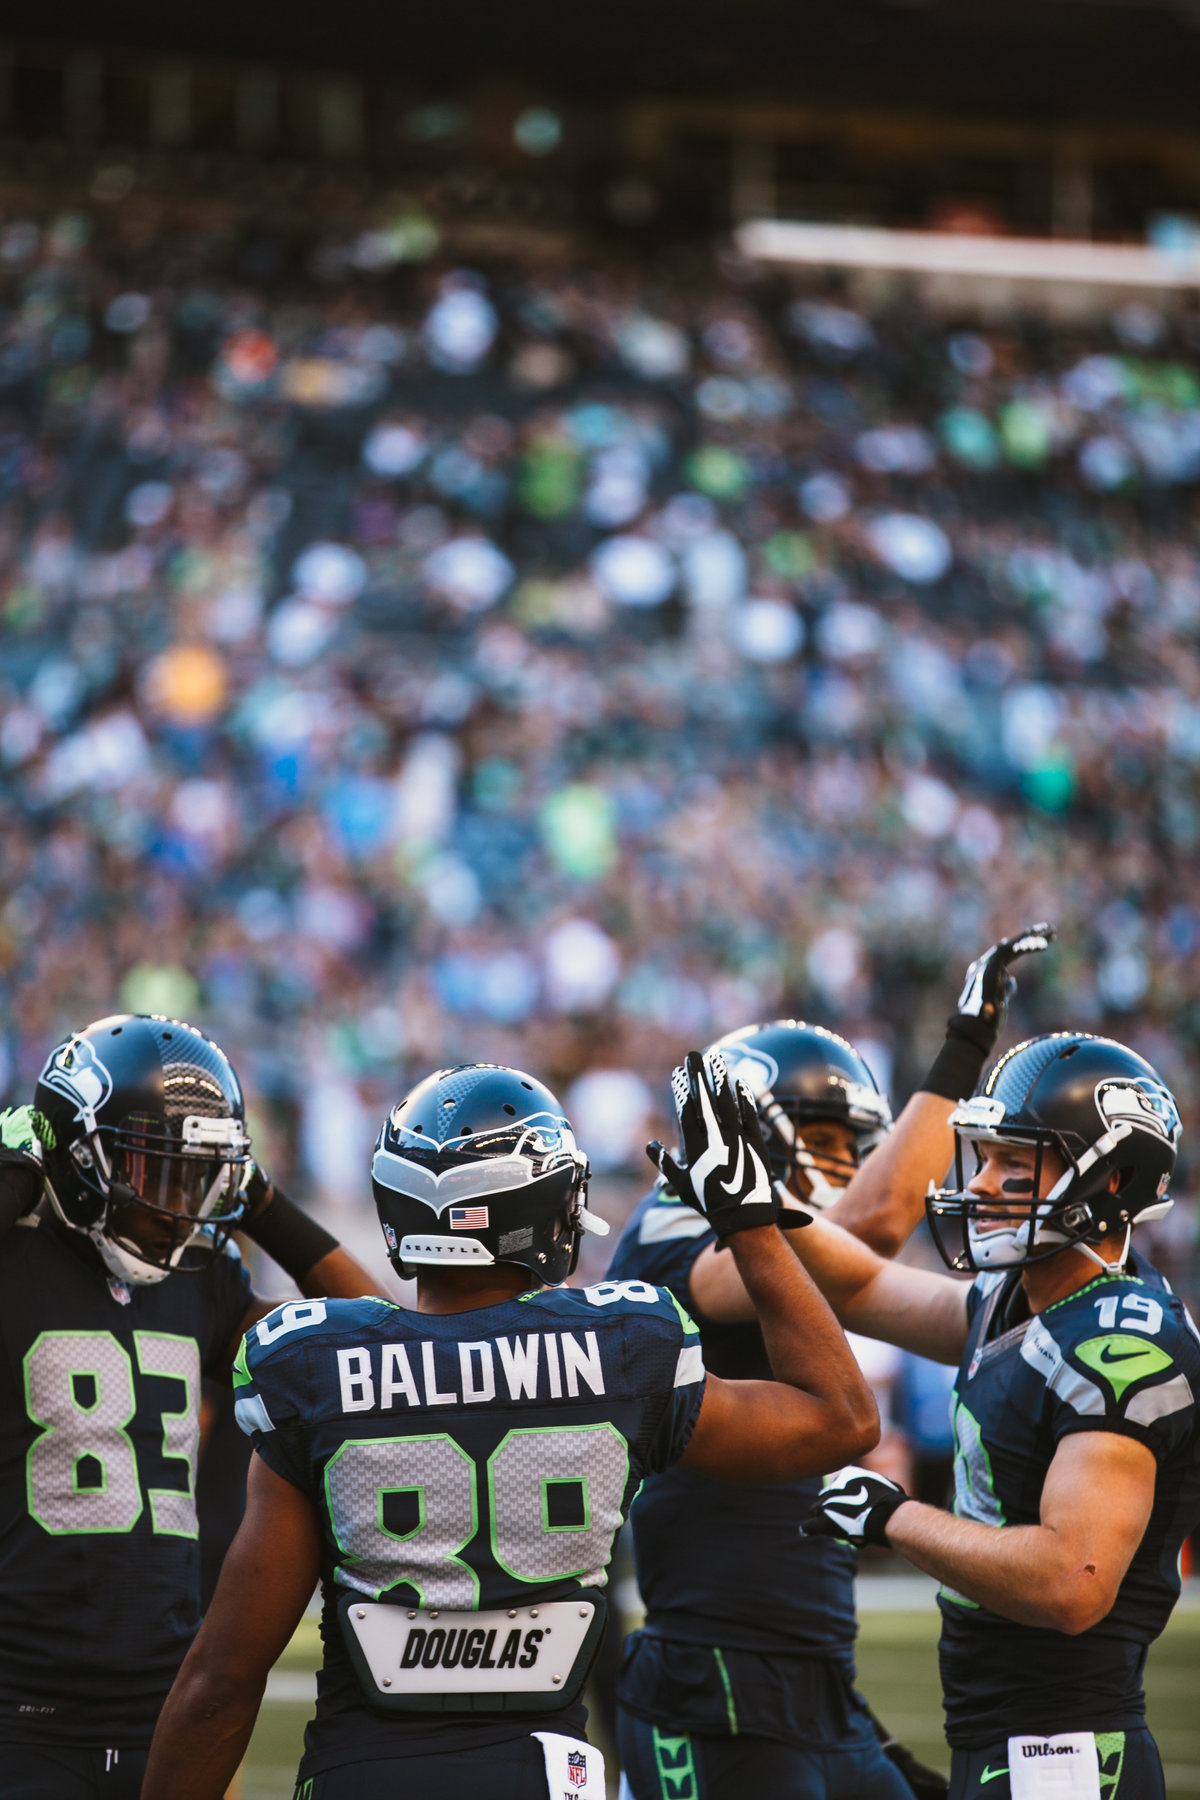 SeahawksVSPackers_9.4.14-6735